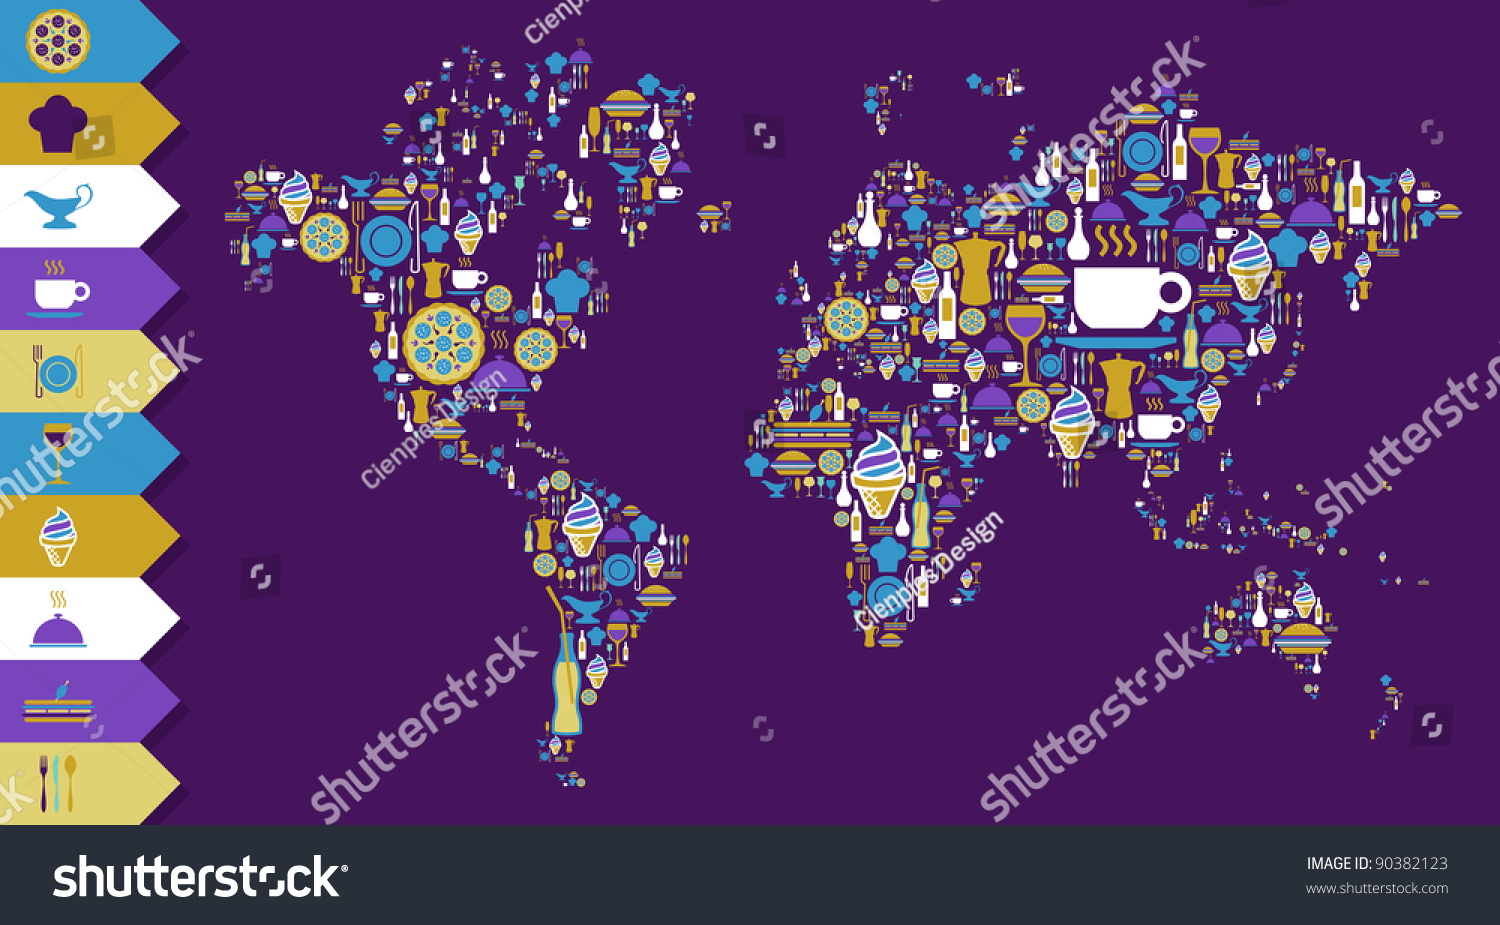 Globe world map shape made gourmet vectores en stock 90382123 globe world map shape made with gourmet icons over violet background vector file available gumiabroncs Images